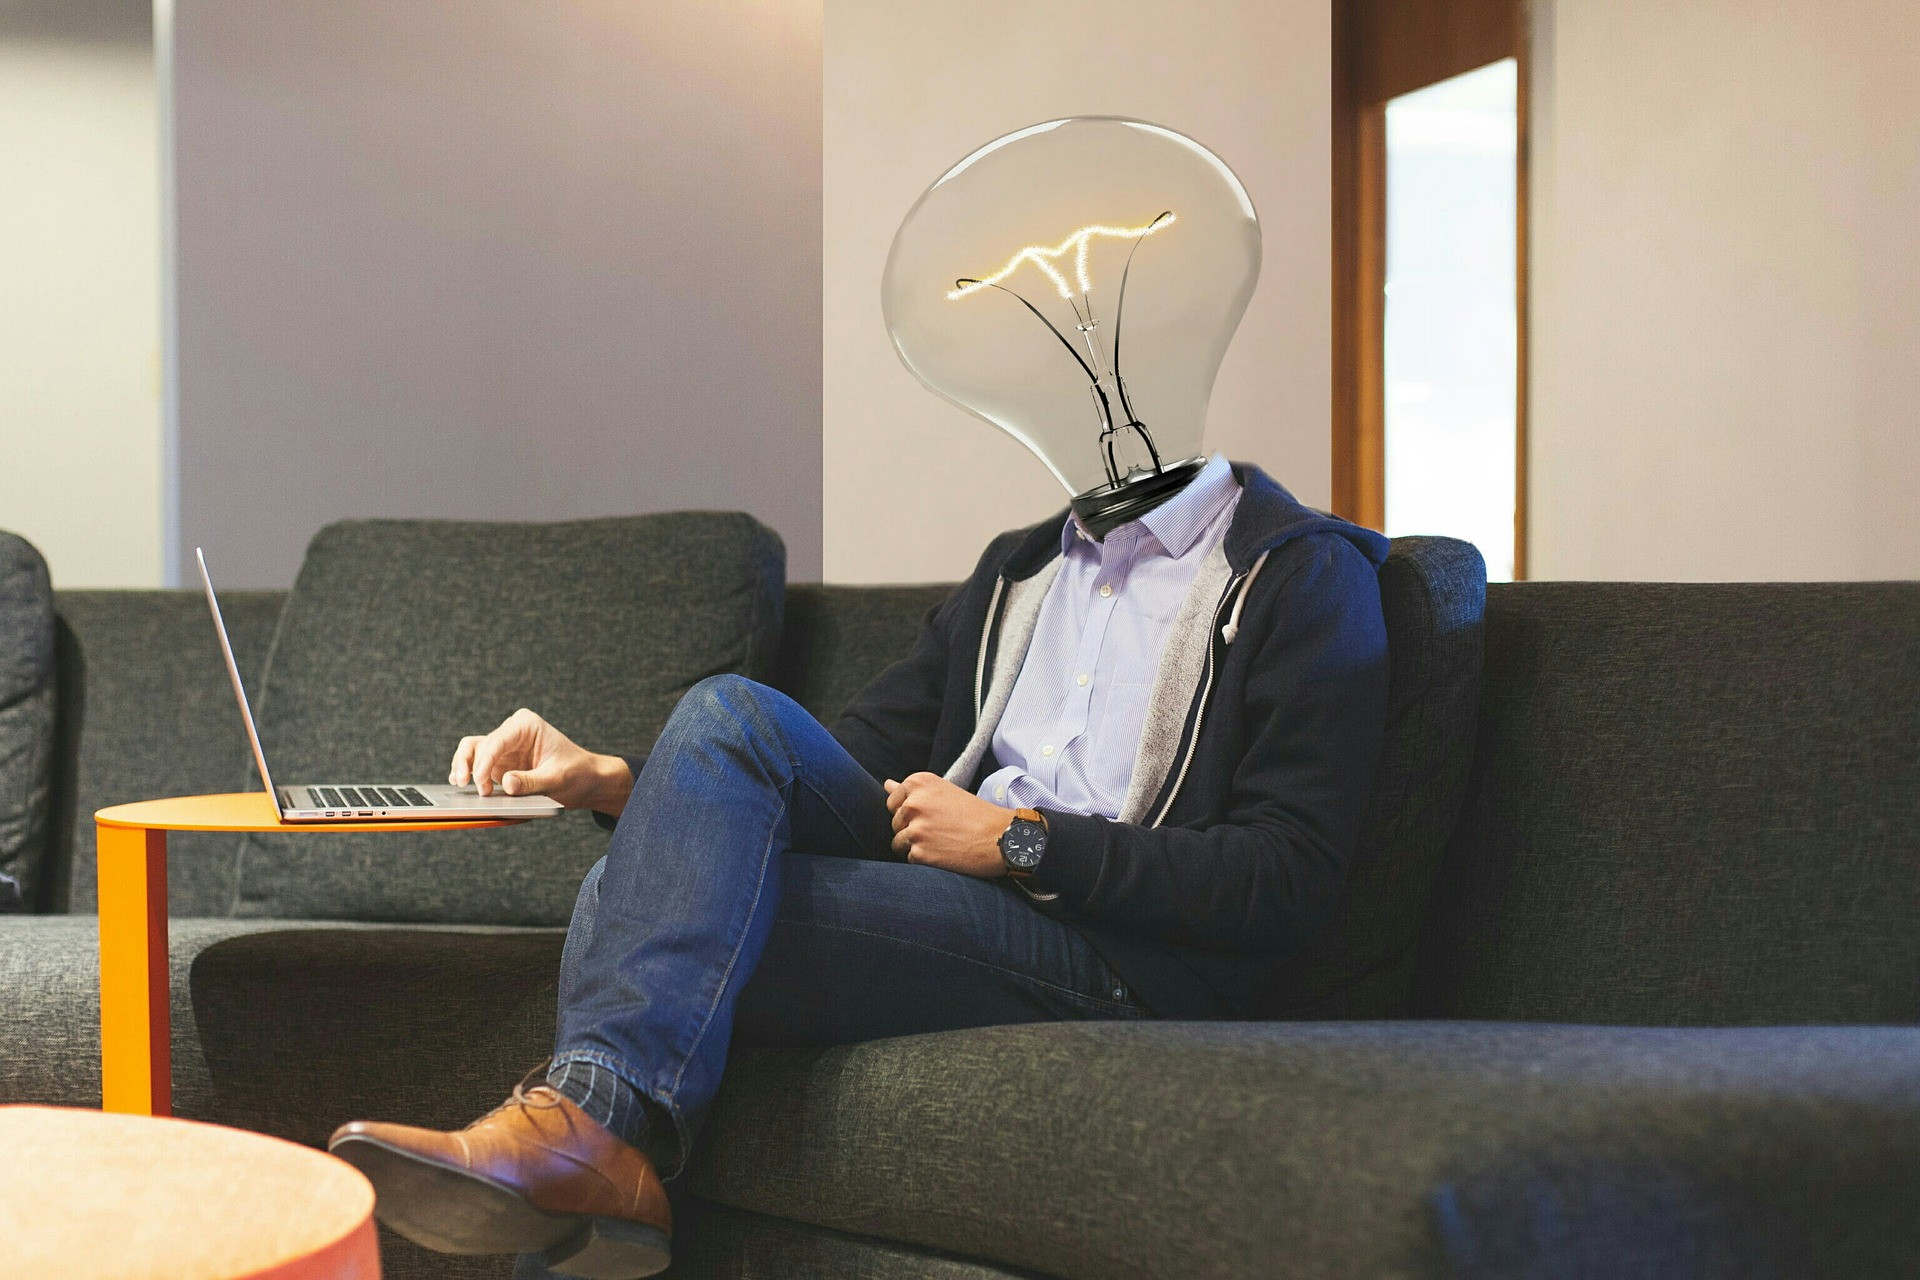 a man sitting on a sofa using a laptop. Instead of a head, there is a lightbulb atop his neck